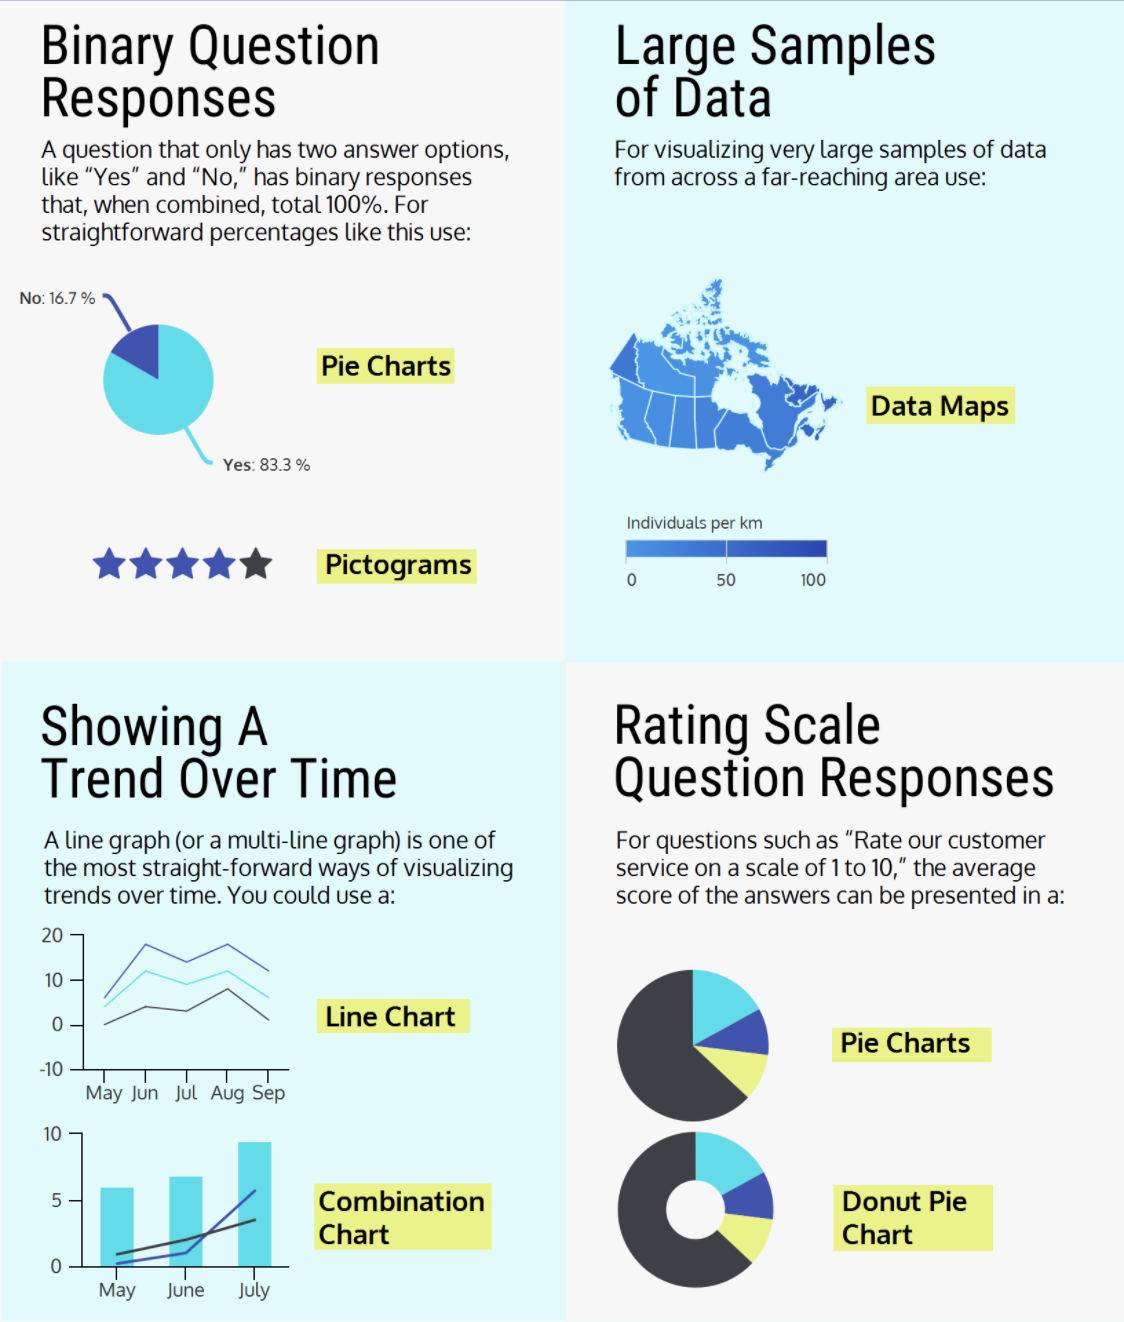 Pie charts, data maps, line charts, and combination charts. Showing binary question responses, large samples of data, trends over time and rating scale question responses.